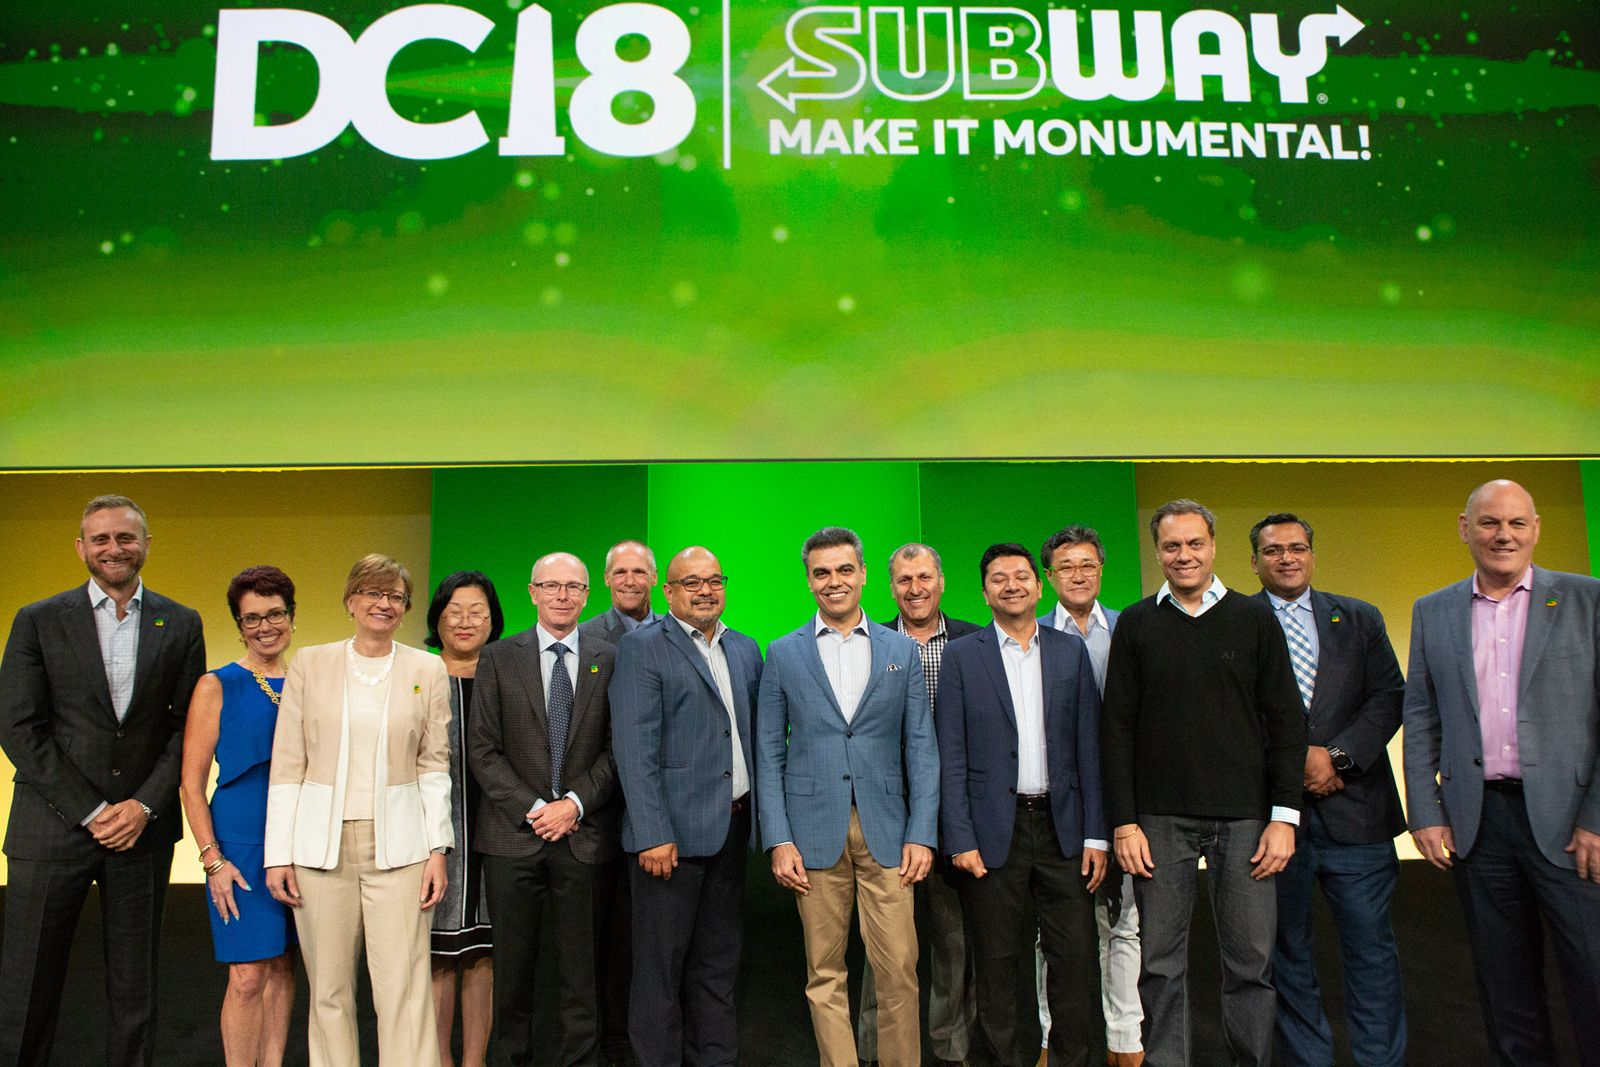 Introducing the Subway 2018 Franchise Owners of the Year and Business Development Agents of the Year